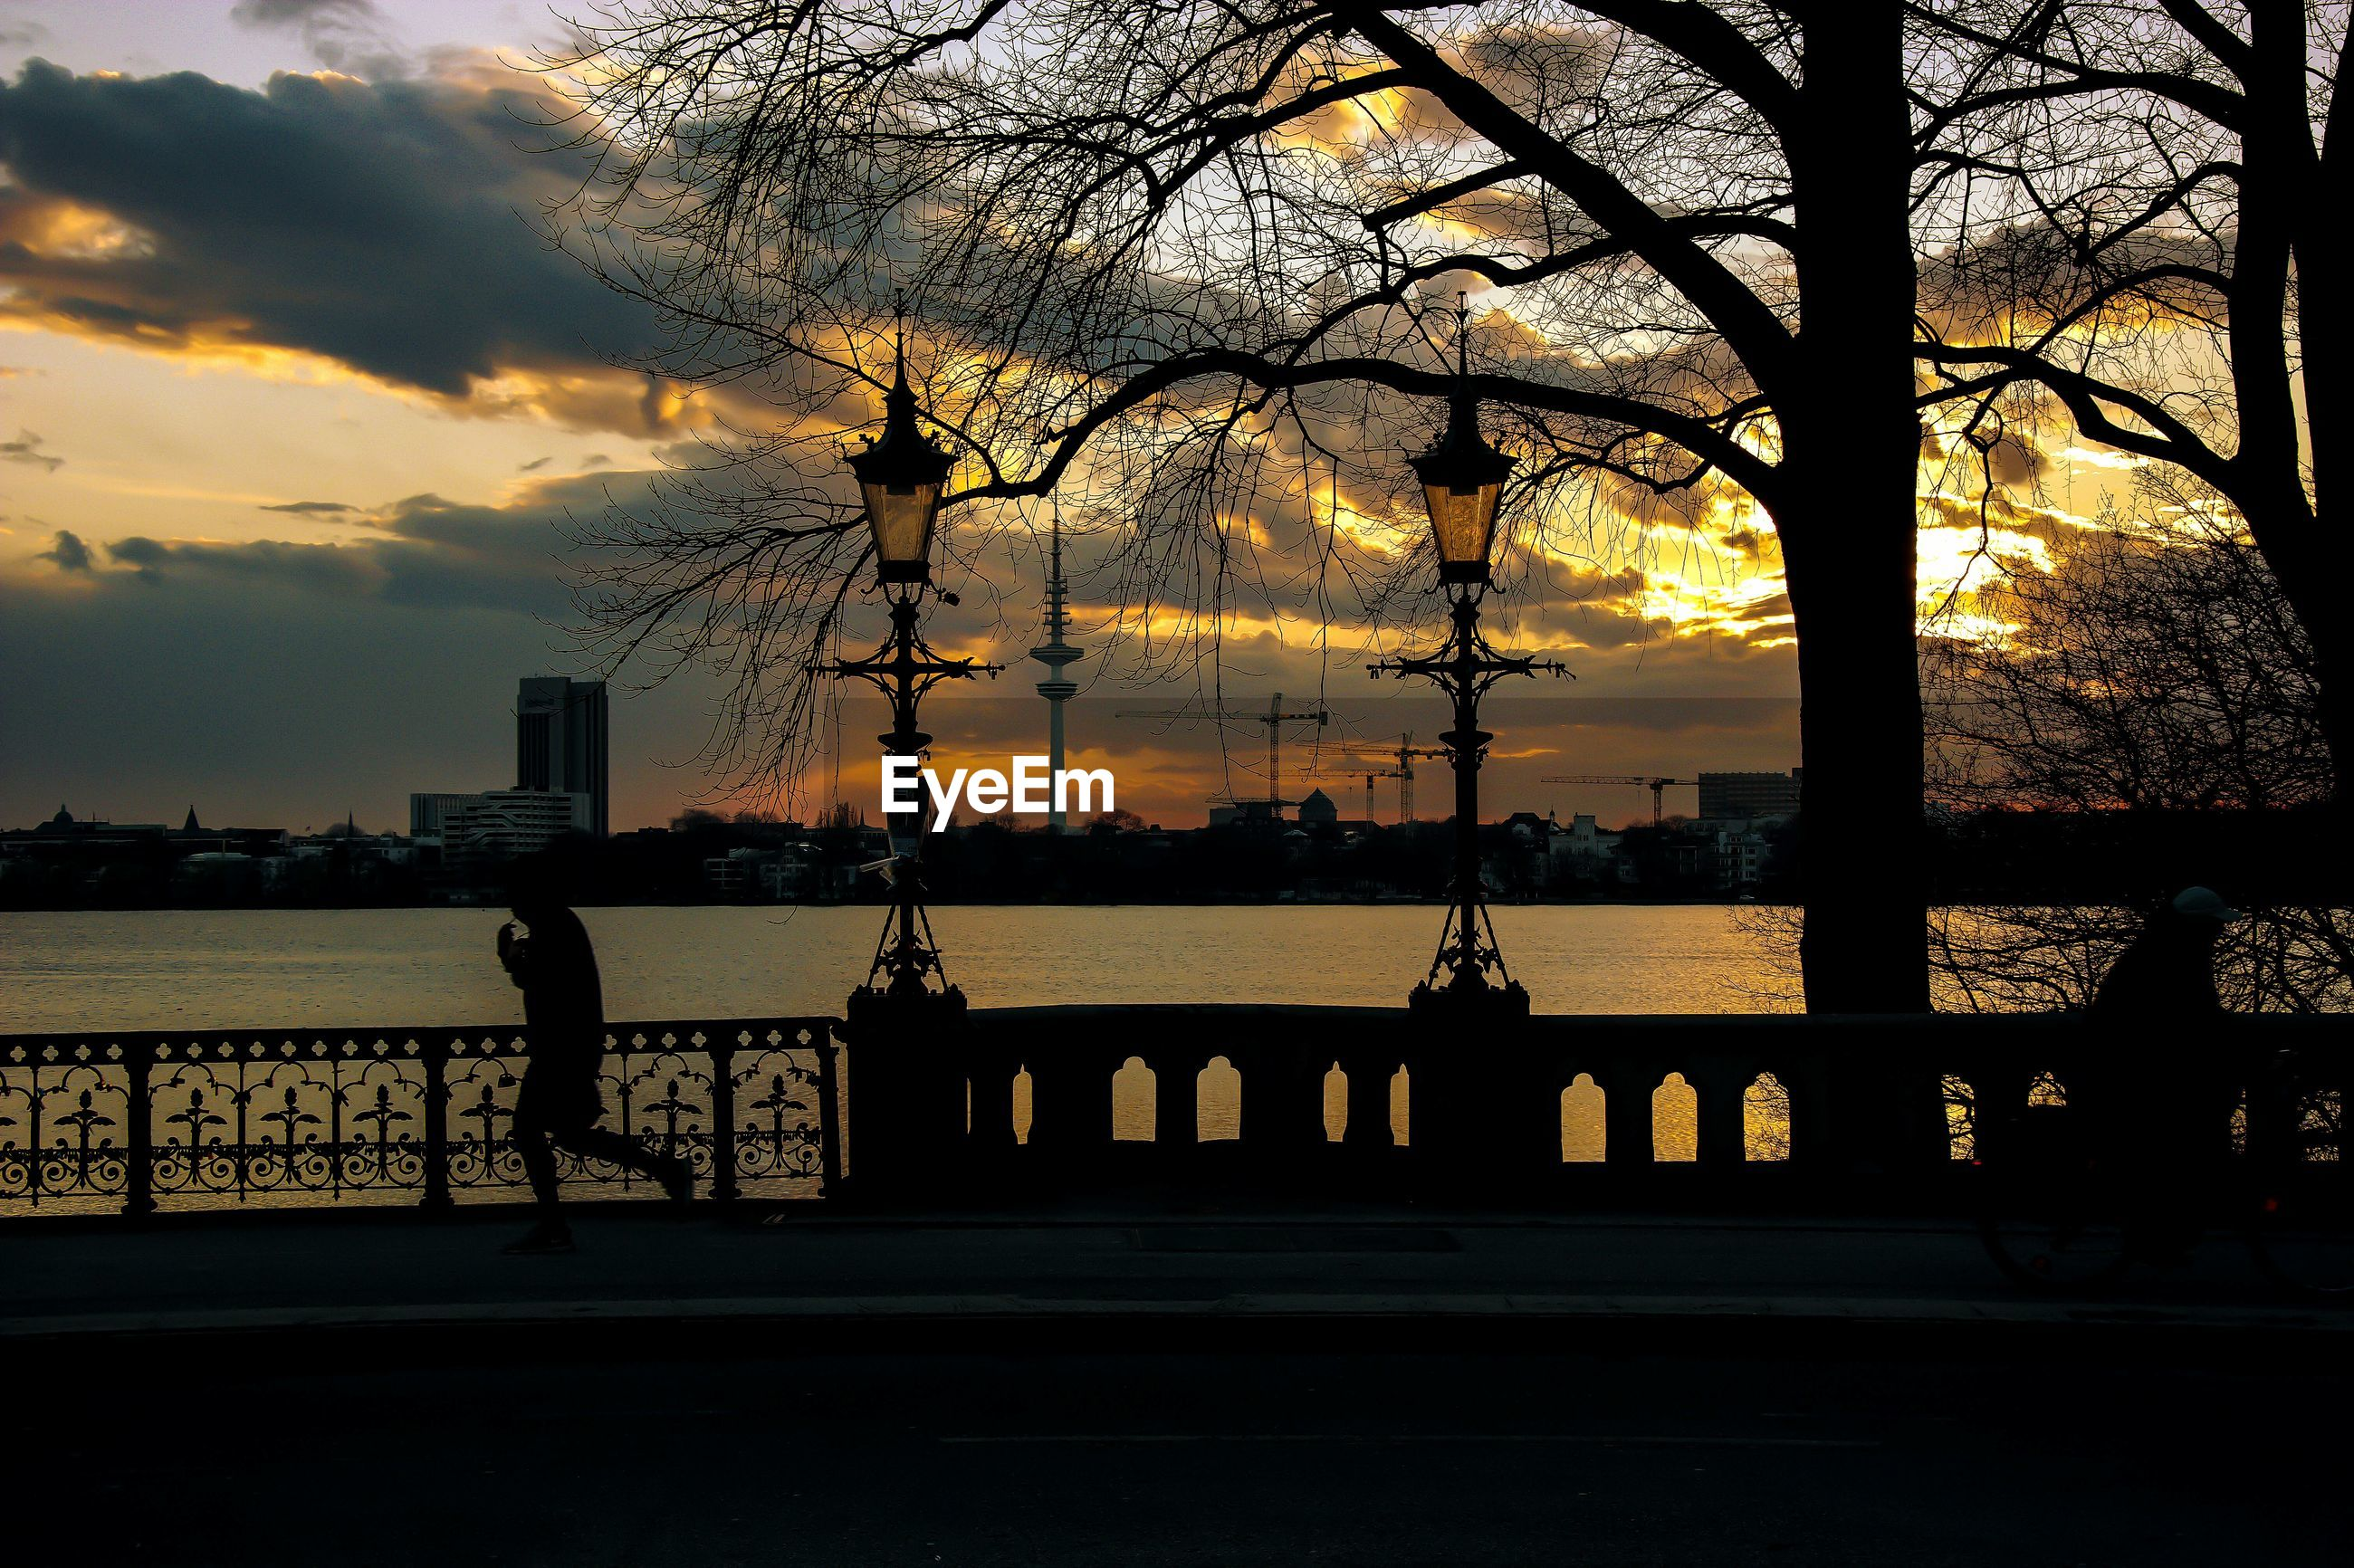 Scenic shot of silhouette trees by river at sunset